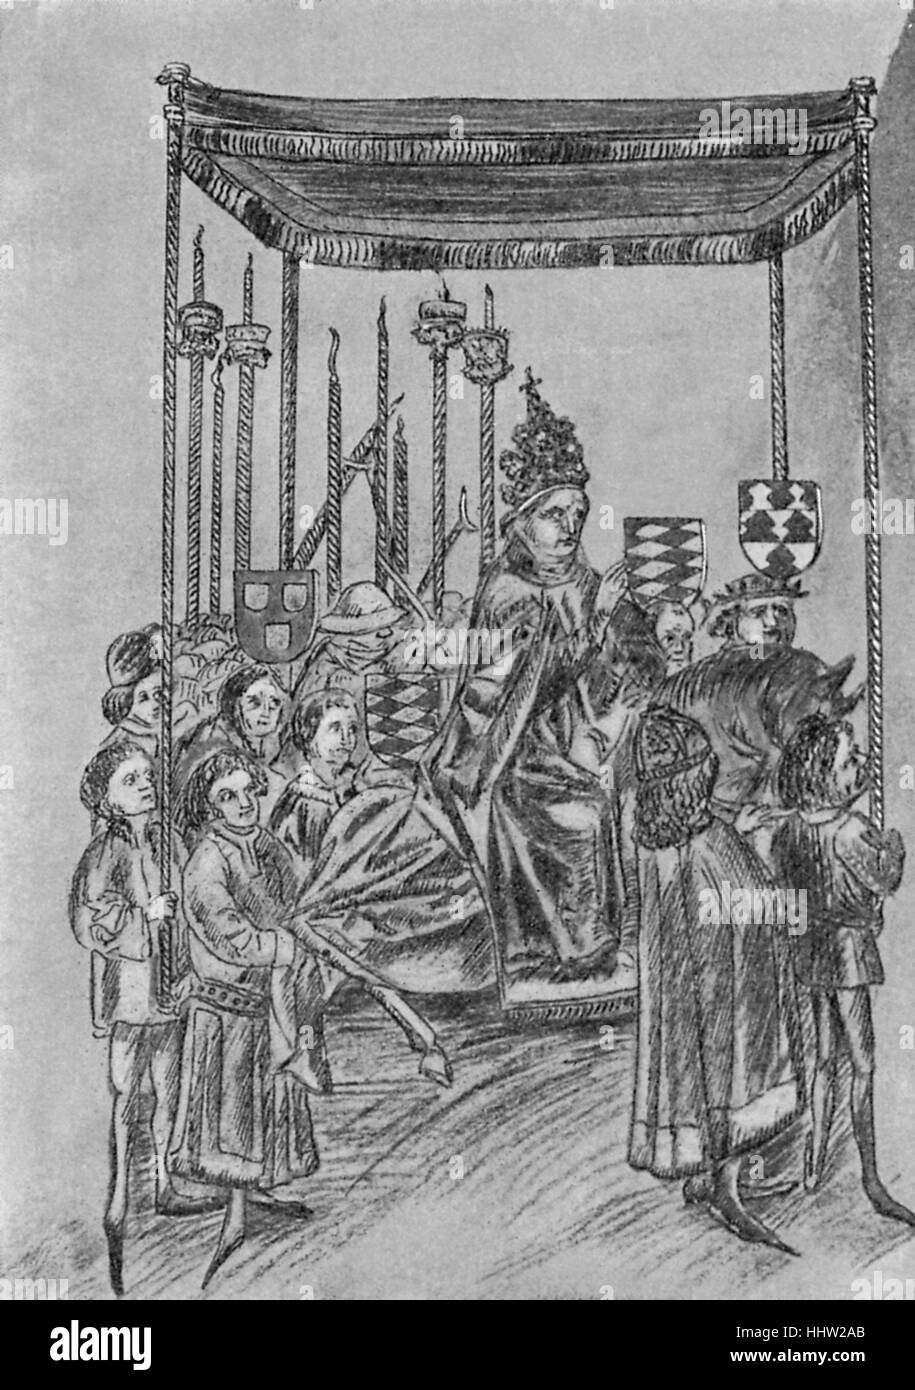 Procession of Jews Meeting Pope Martin V. At the Council of Constance, 1417. From a manuscript chronicle of Ulrich - Stock Image